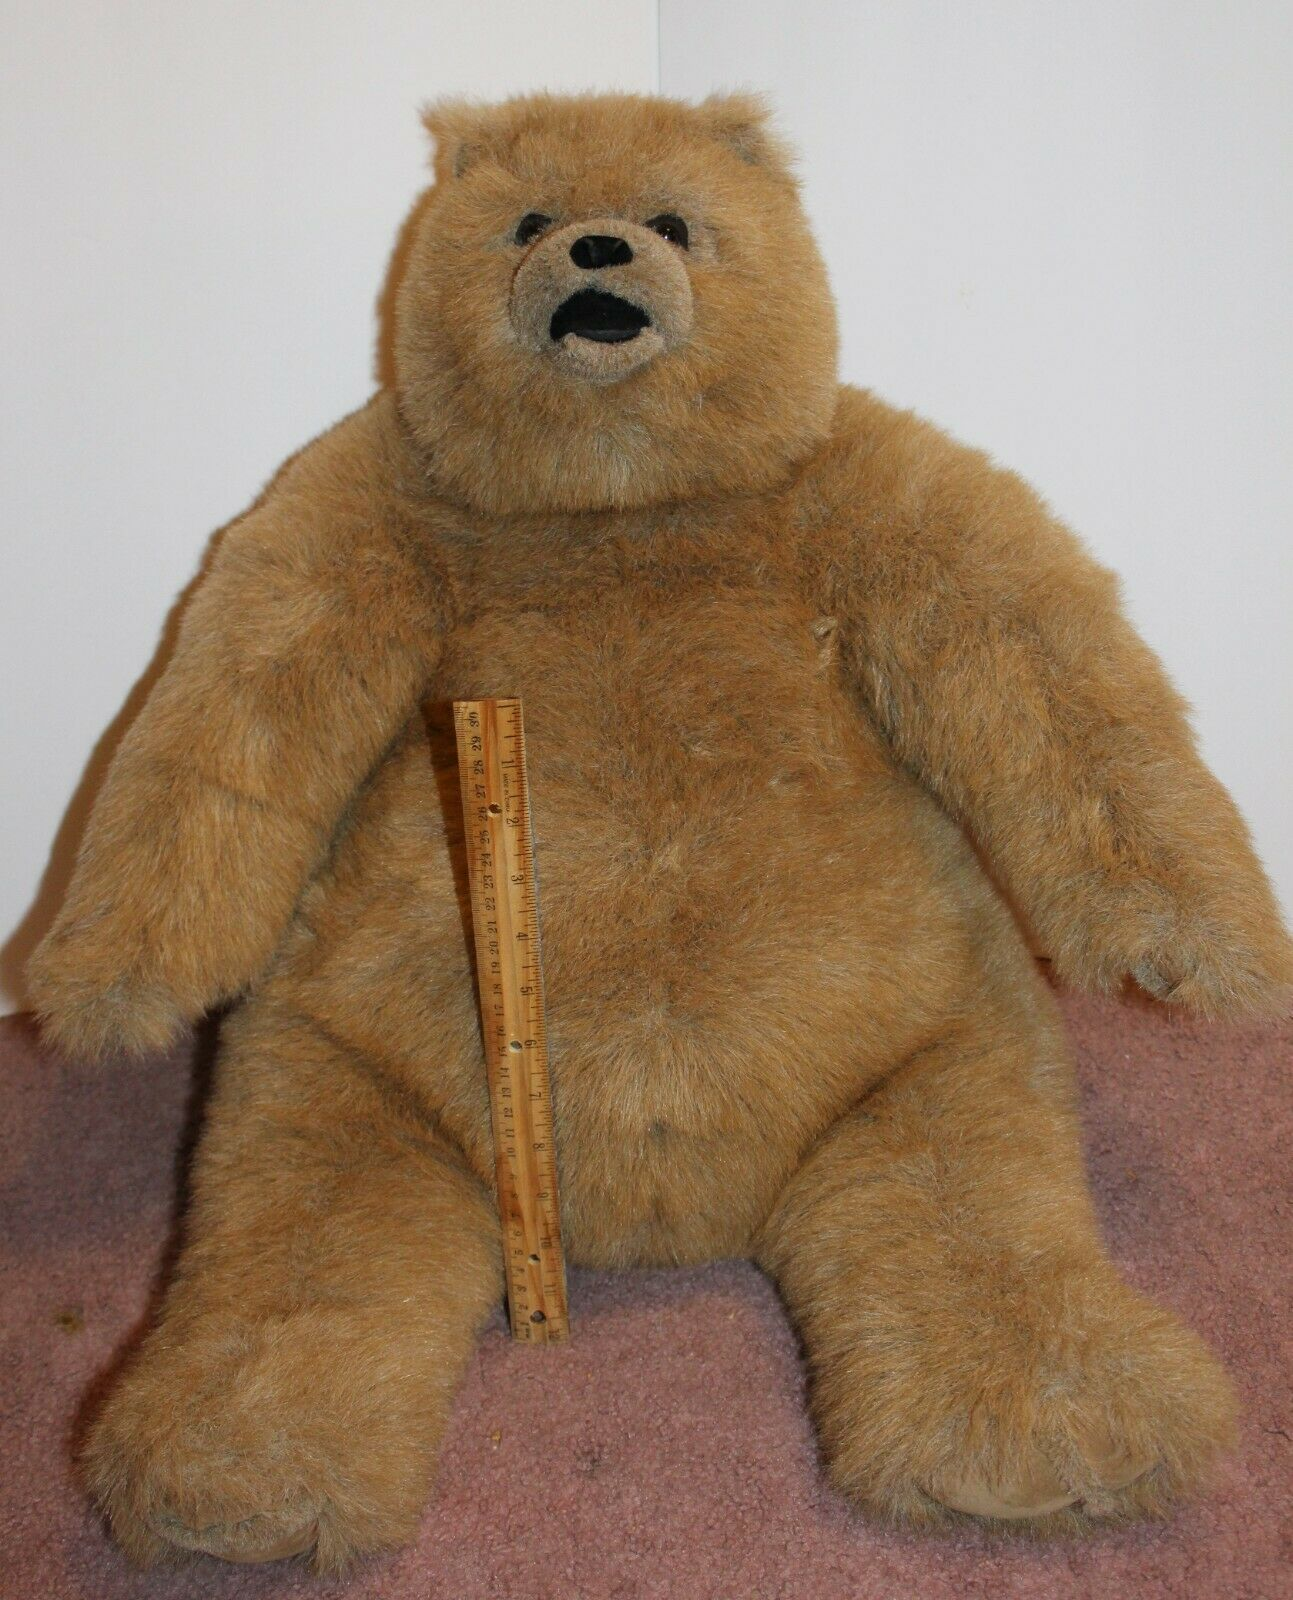 Big Big Teddy Bear Manhattan Toy Company 19  1997 Rare Huge Large Seated Vintage